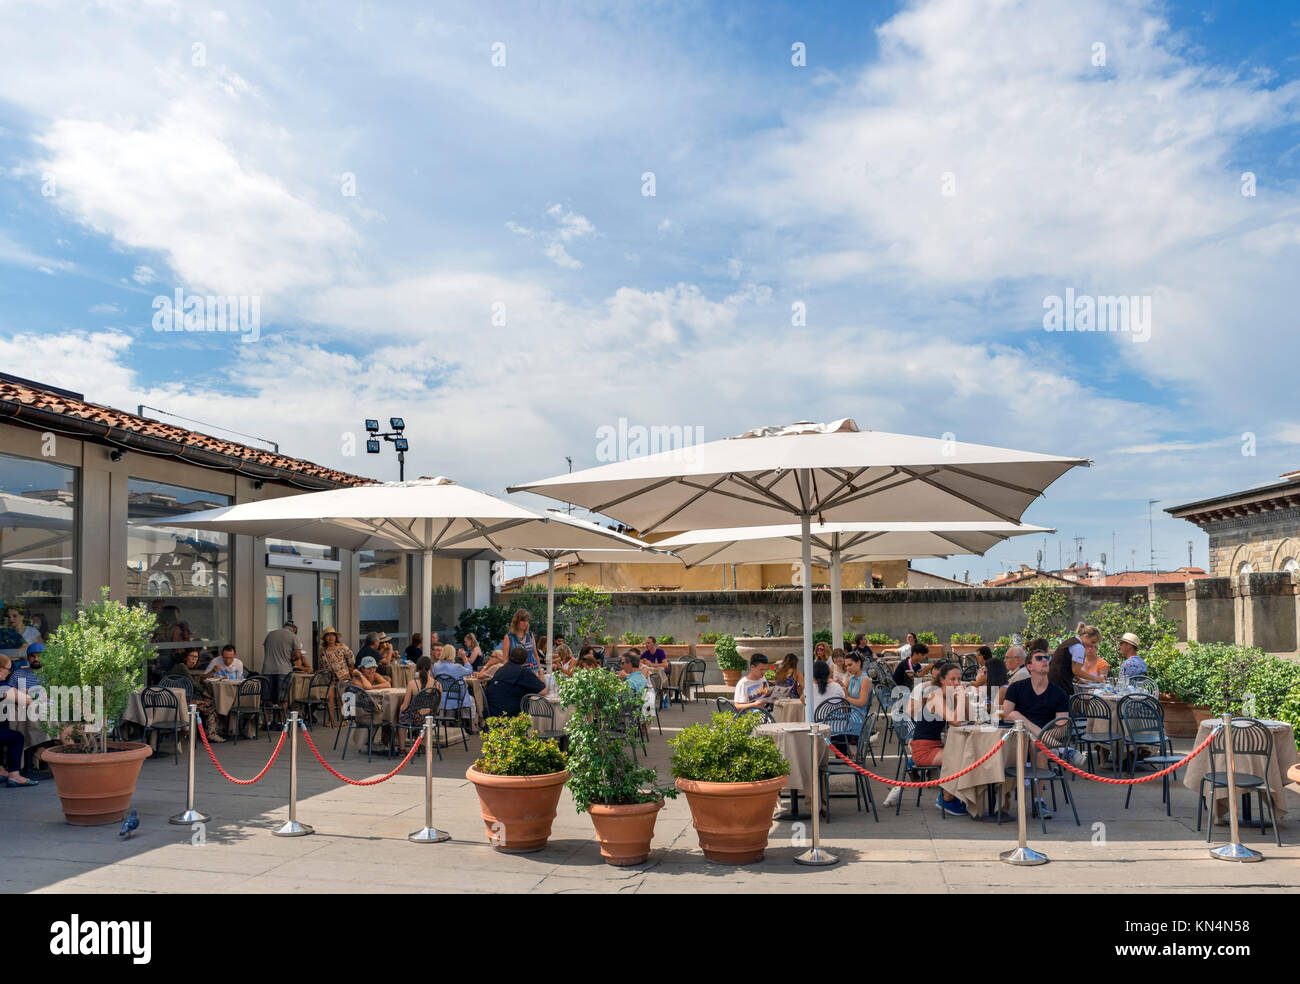 Rooftop cafe in the Uffizi Gallery, Florence, Italy. - Stock Image